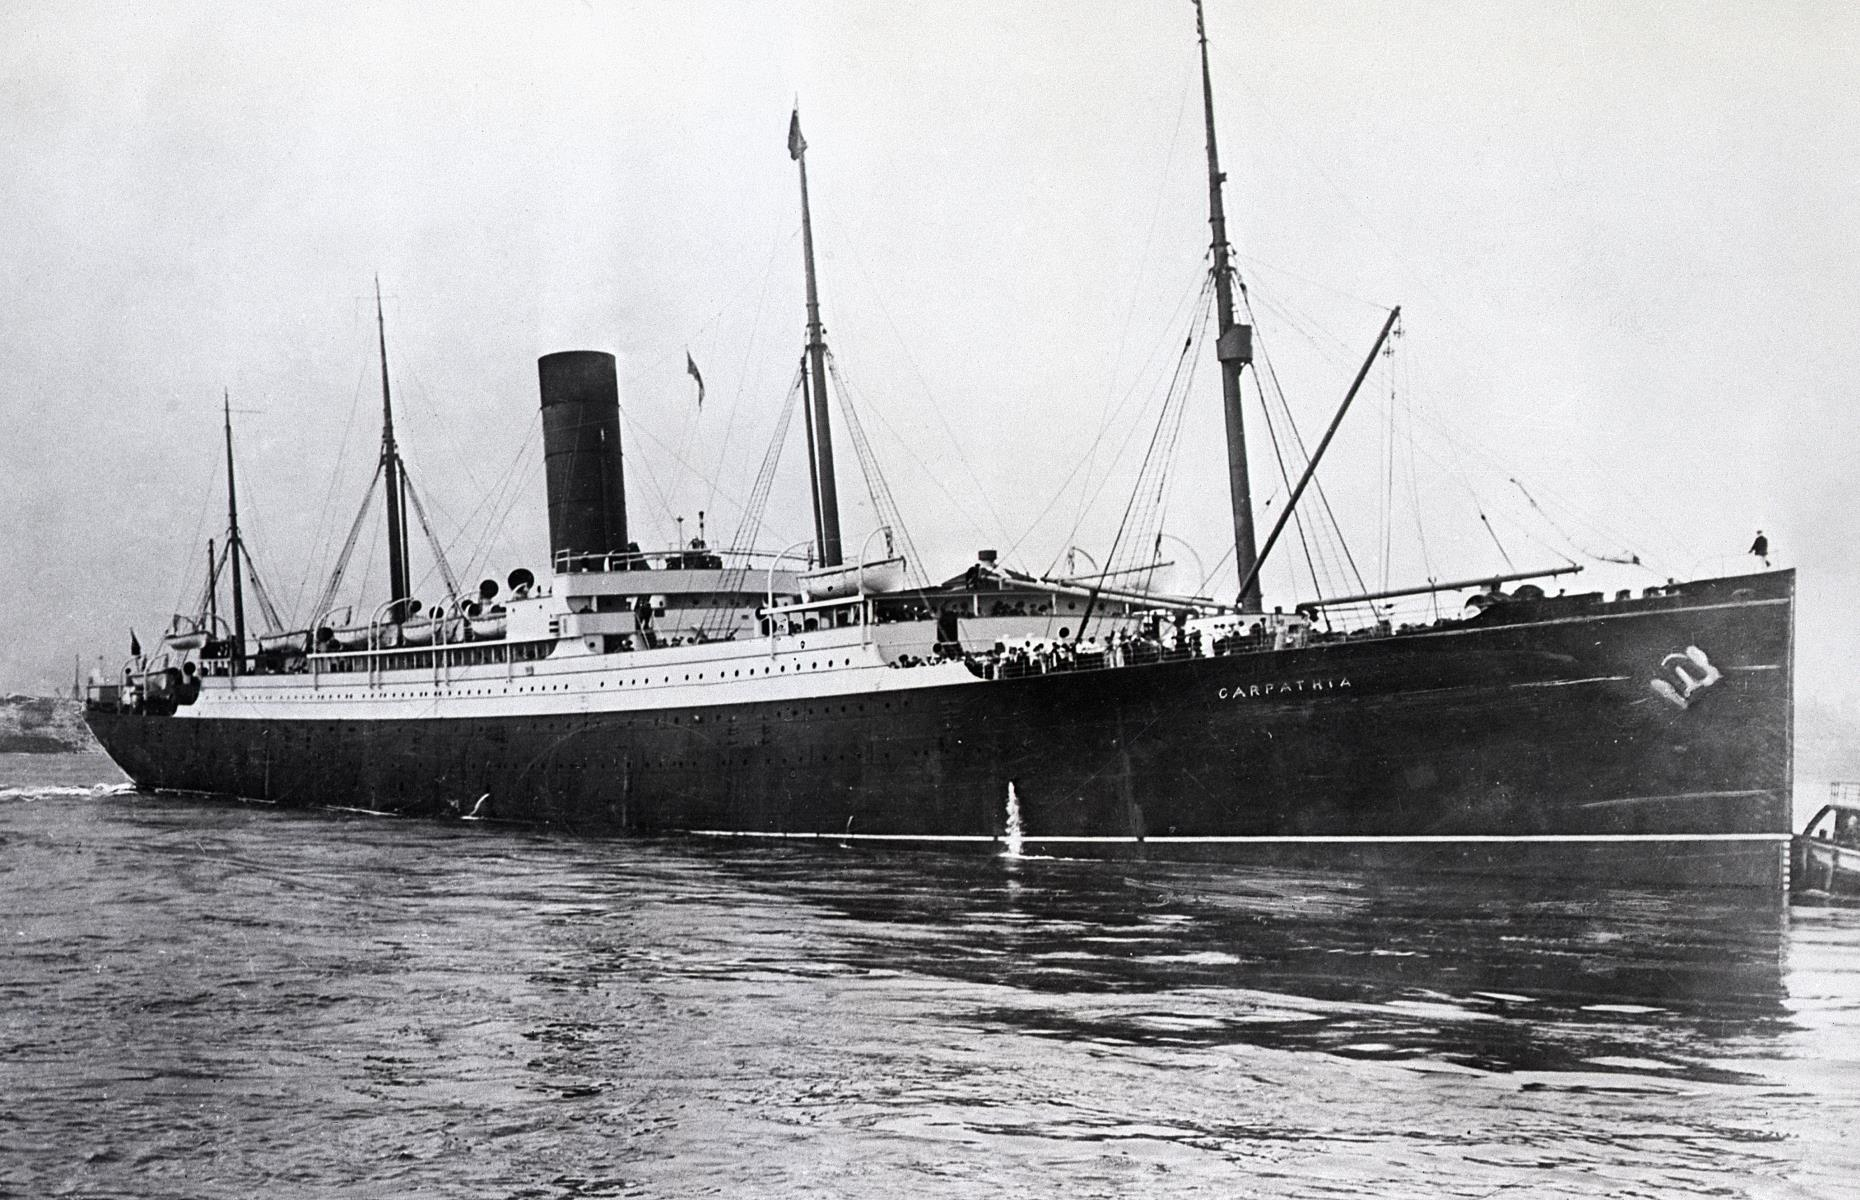 Slide 34 of 46: While the Titanic had sent multiple distress signals it was Cunard's ship Carpathia which came to the rescue of survivors, taking them to New York. However, the Carpathia couldn't reach the scene until 4am, four hours and 20 minutes after the Titanic struck the iceberg. It took a further four hours to get survivors from the lifeboats onto the Carpathia. Six years later in July 1918, the unlucky Carpathia met her own terrible end too, sinking during the First World War after being torpedoed by a German U-boat.